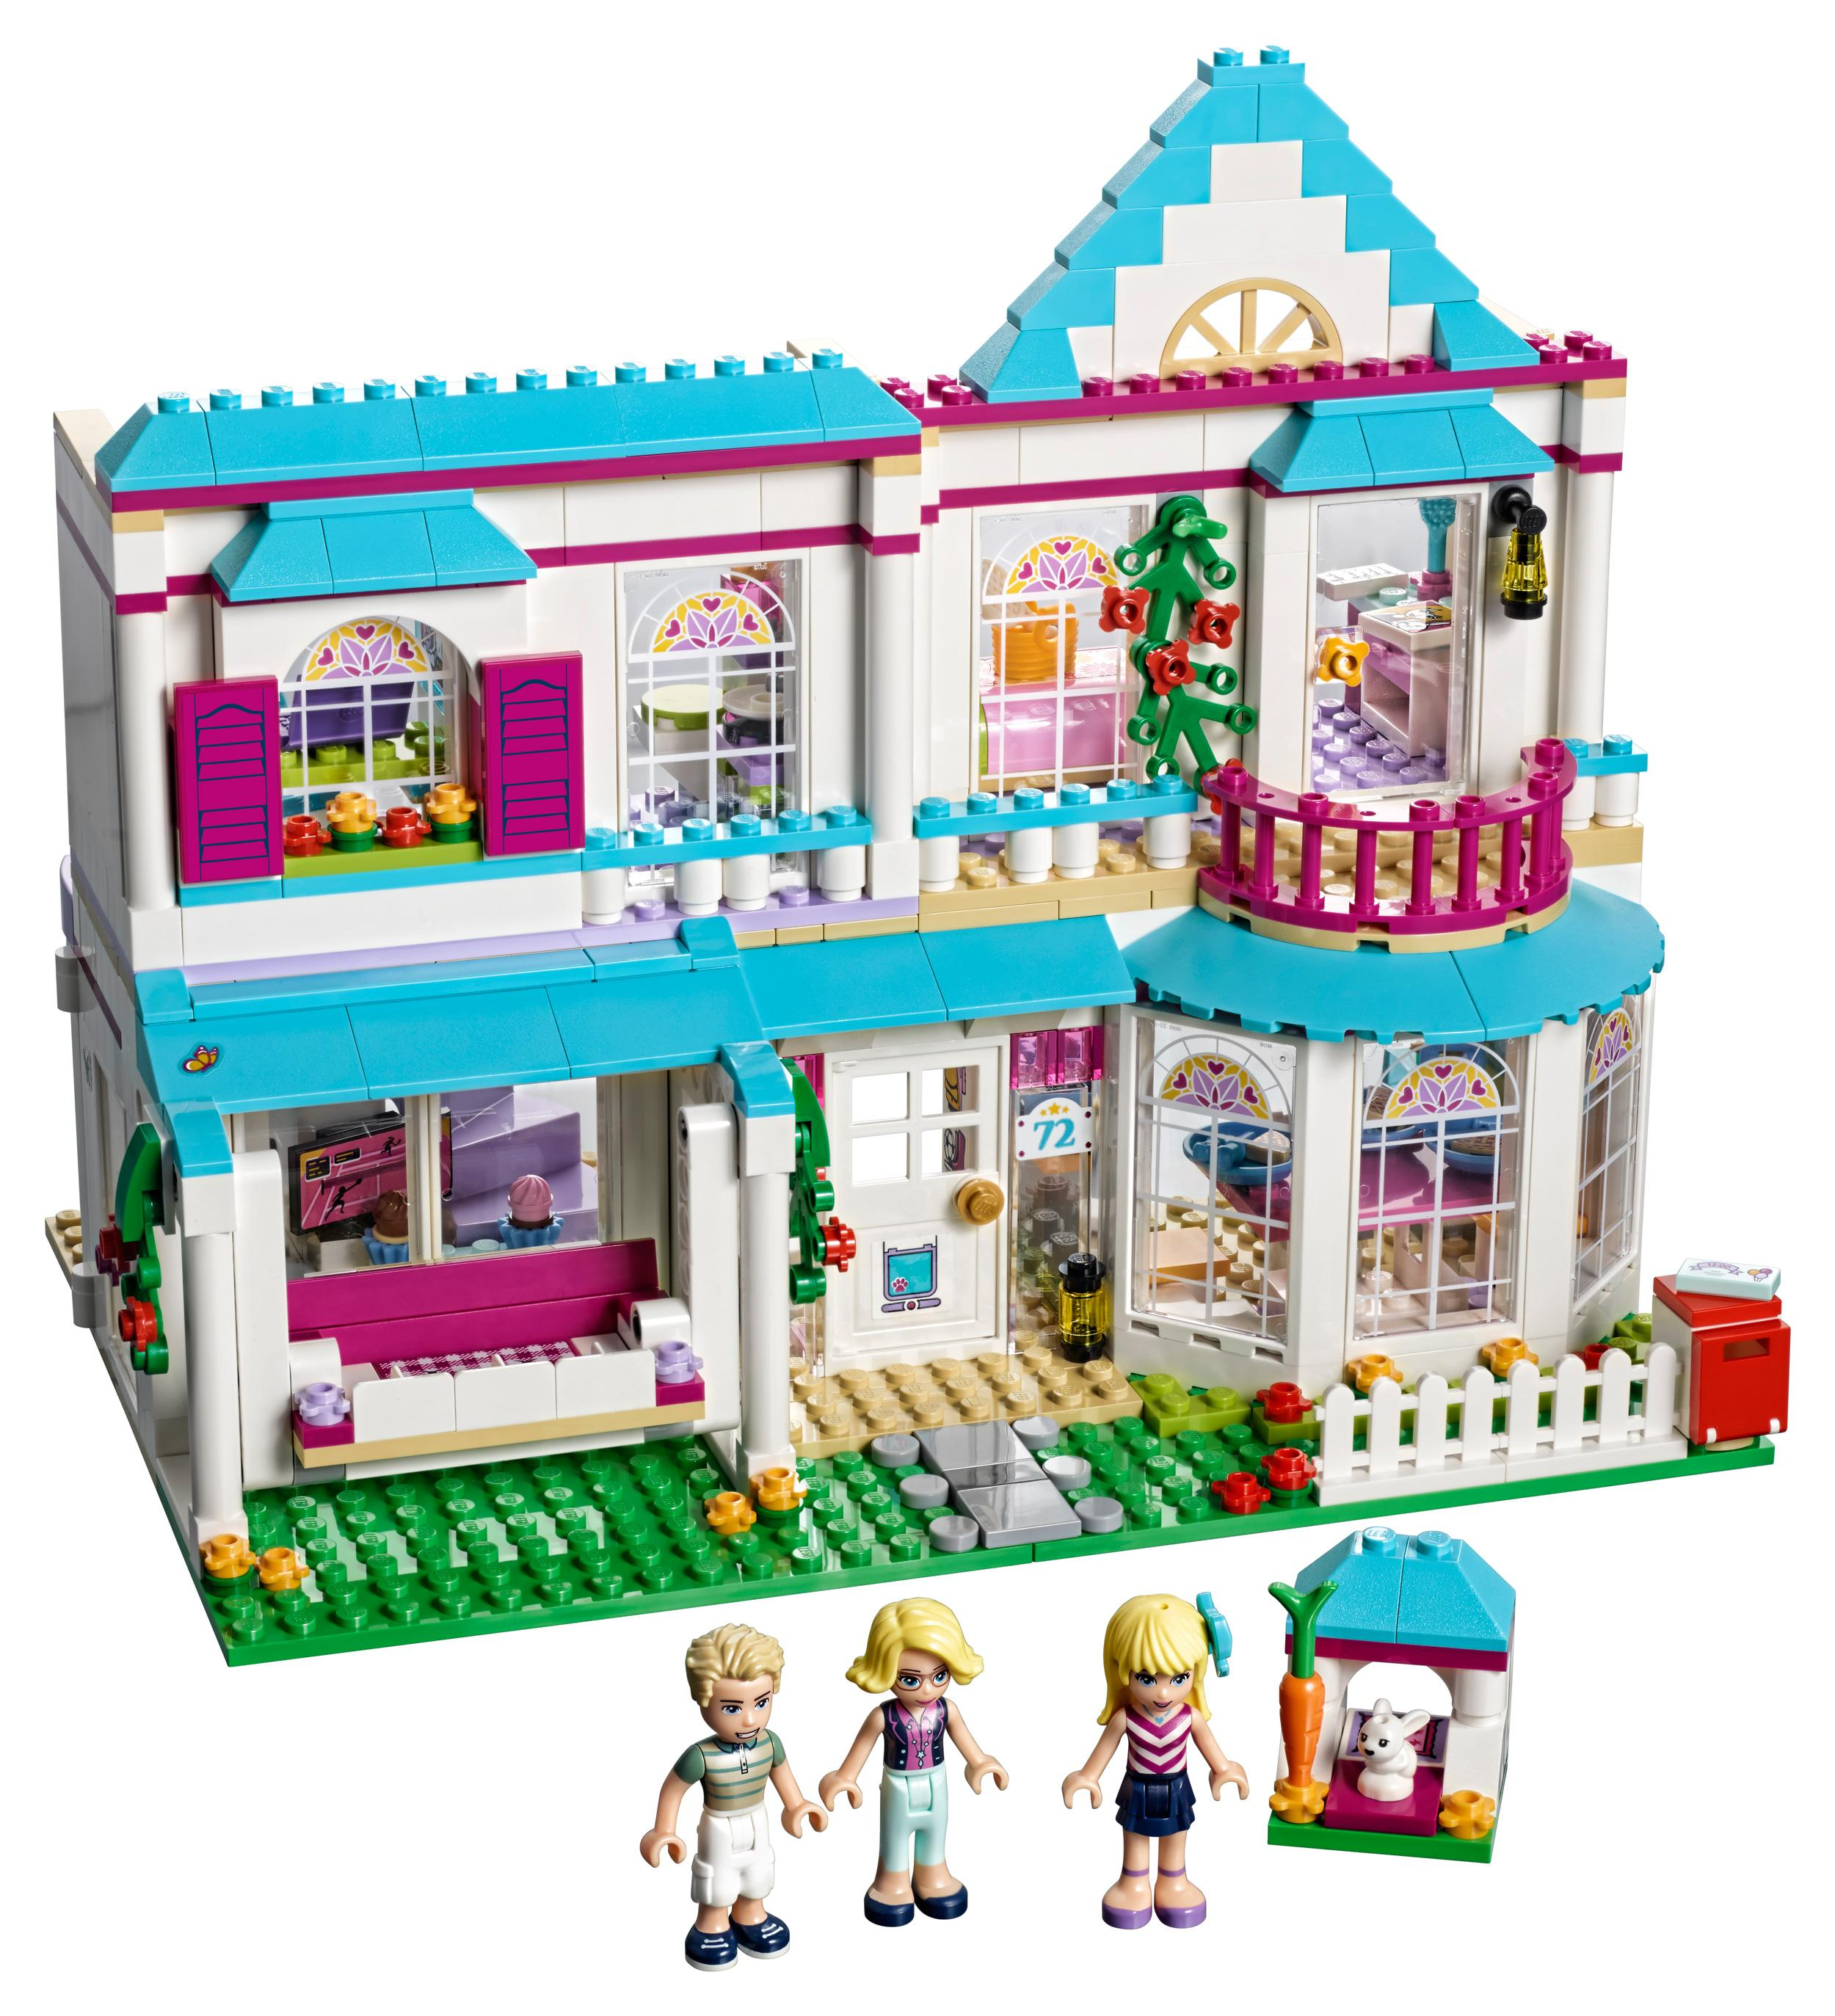 Lego friends stephanie 39 s house 41314 toy for 6 for Kitchen set for 9 year old